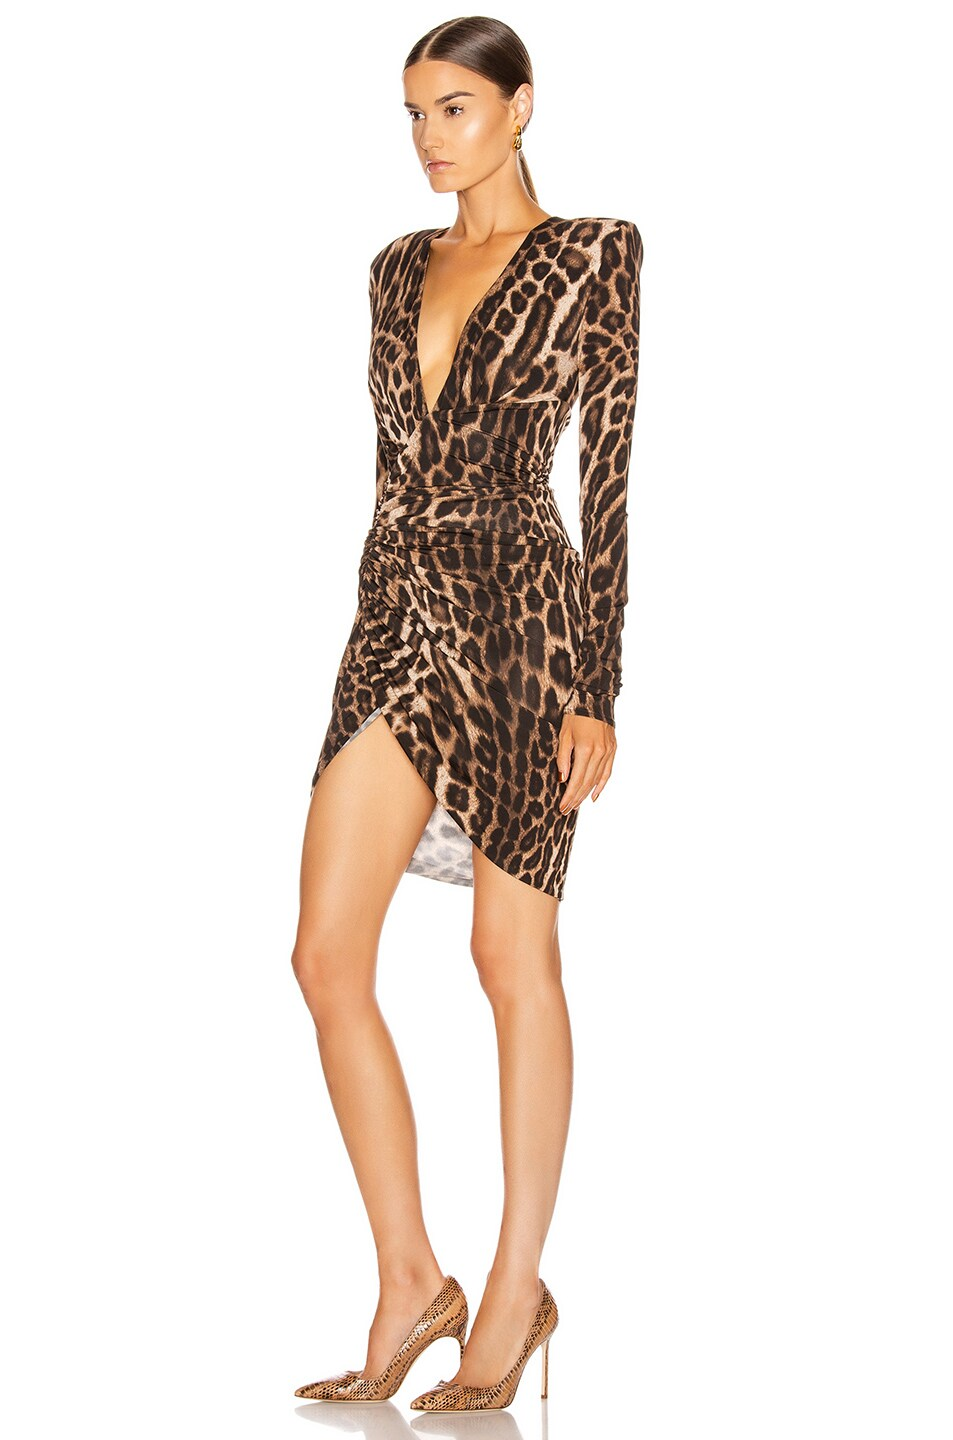 Image 3 of Alexandre Vauthier for FWRD Plunging Ruched Mini Dress in Animal